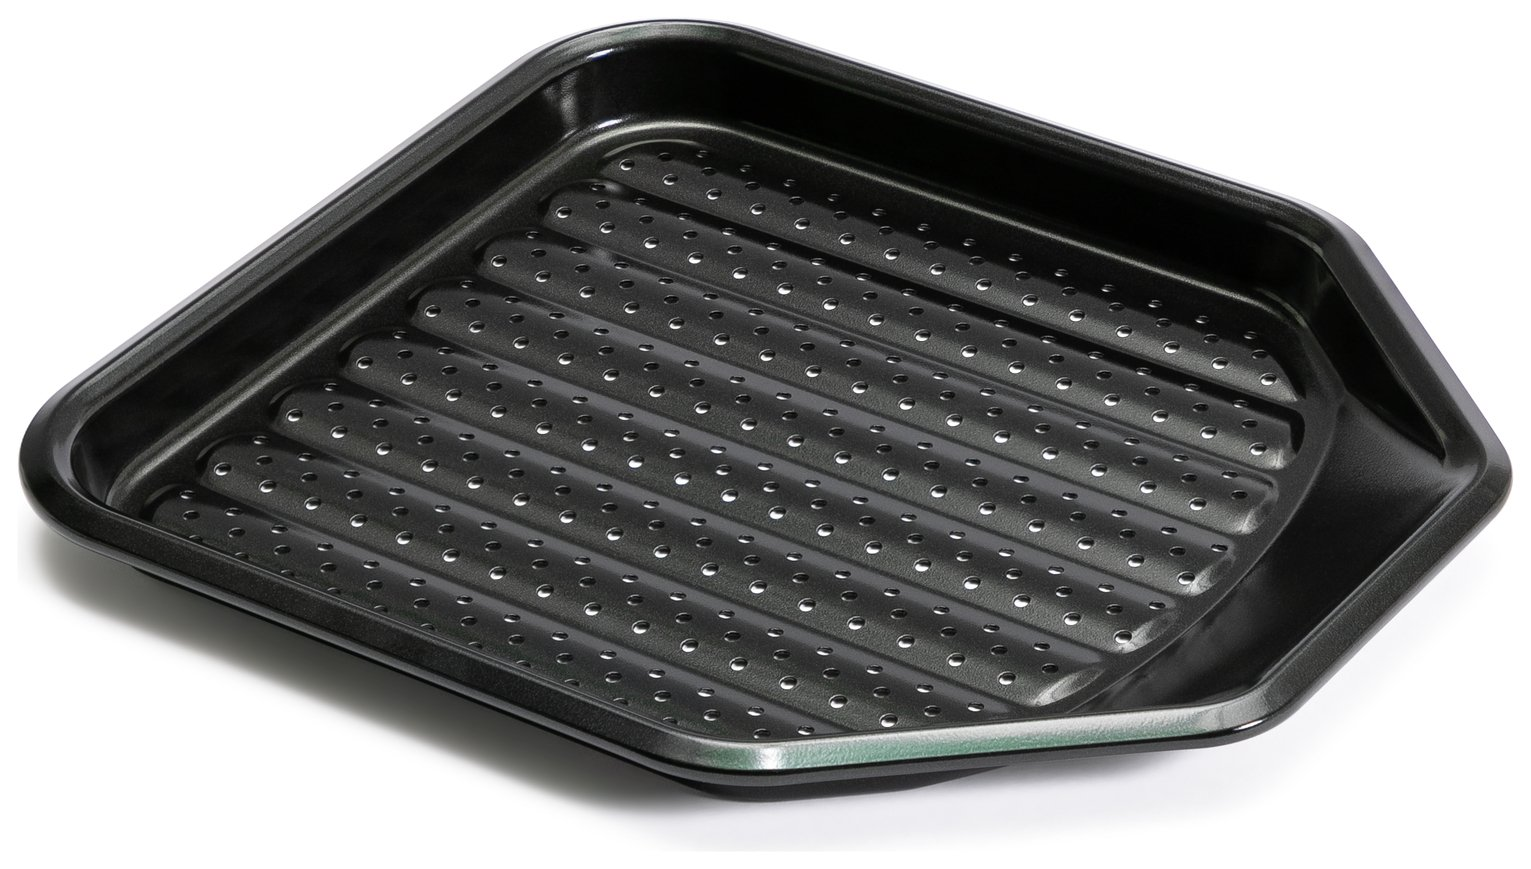 Image of 2 in 1 Crisper Tray